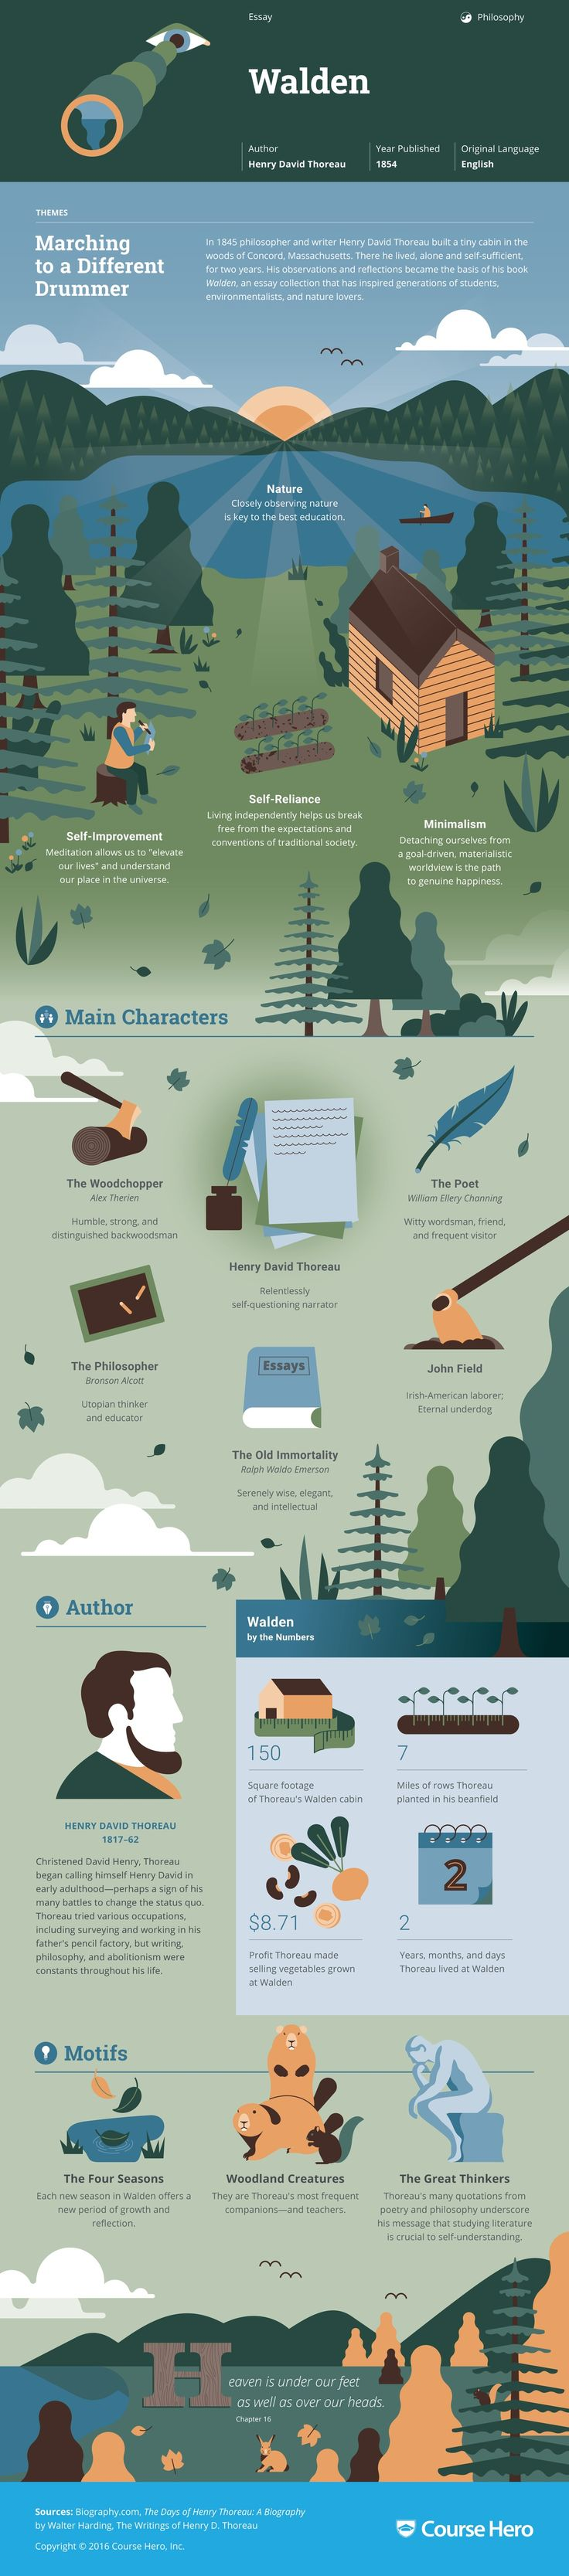 17 best ideas about henry david thoreau walden walden infographic course hero